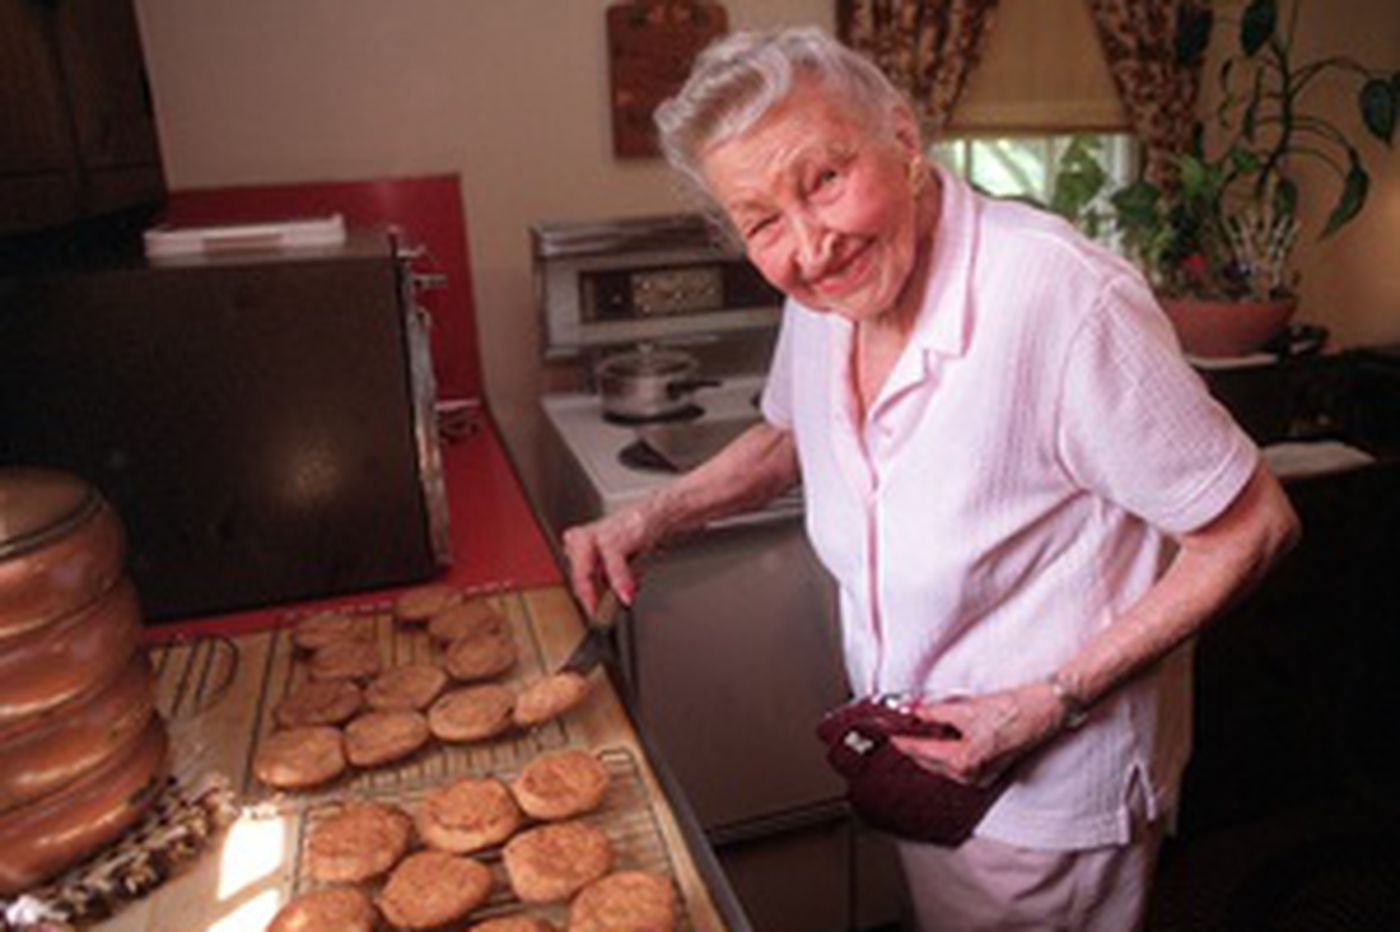 Phila. pioneer whet appetite for television cooking shows